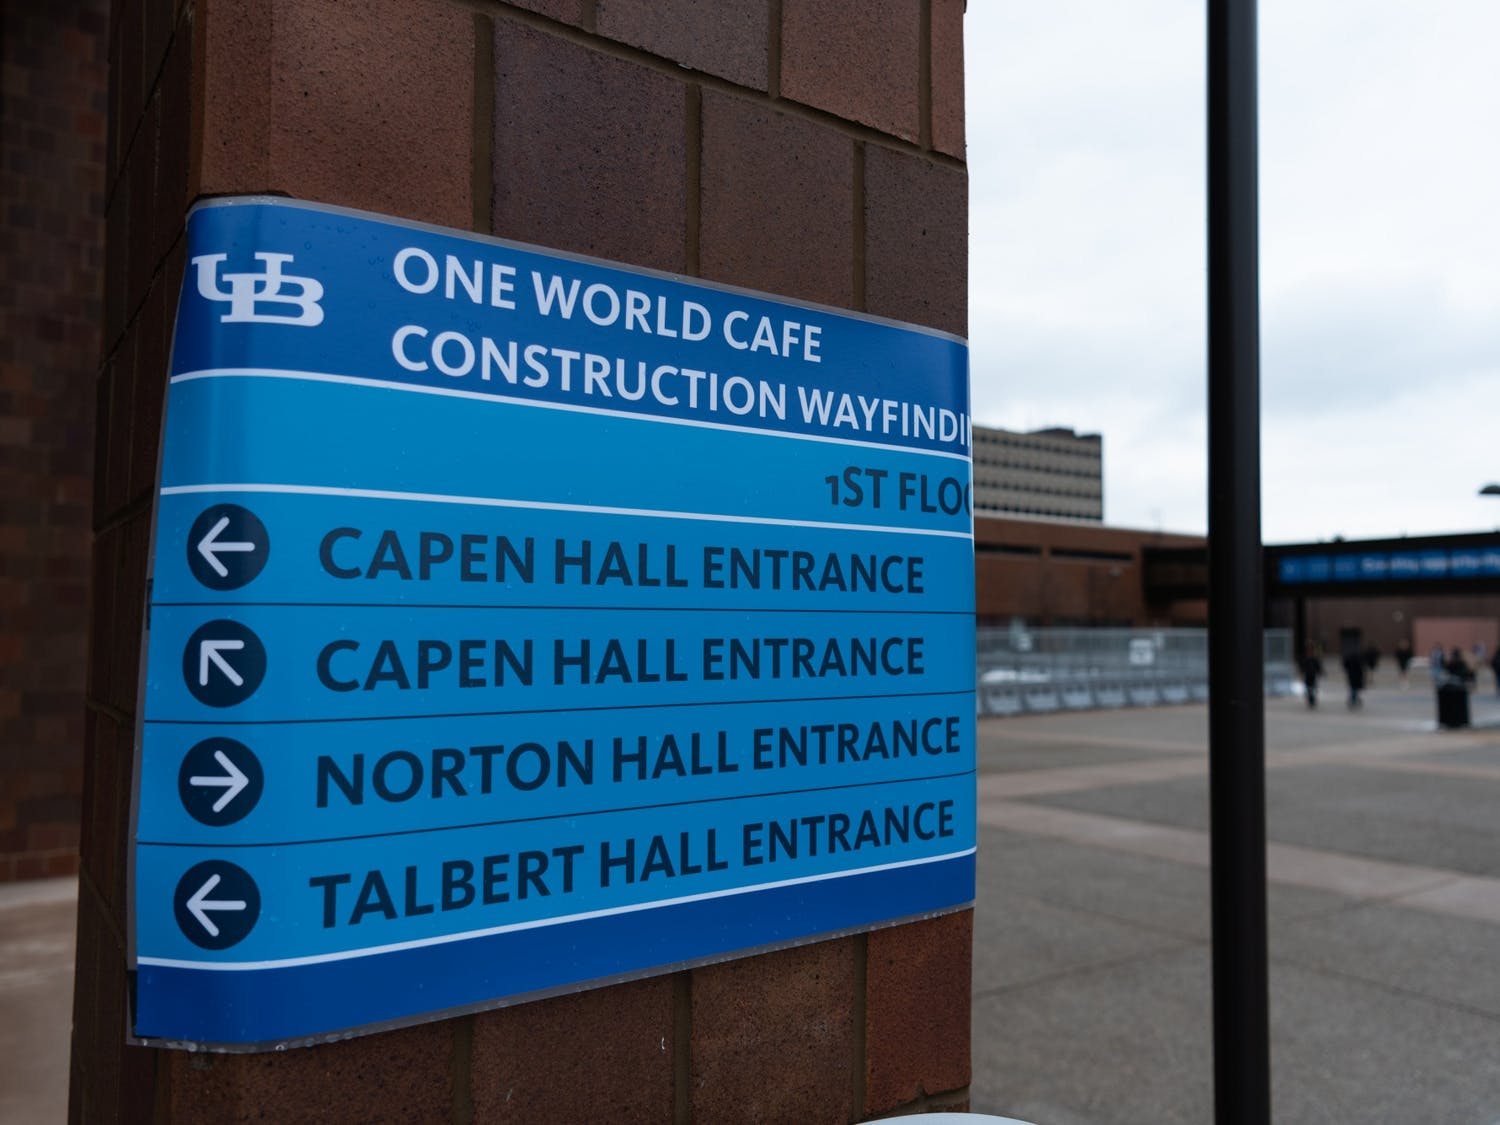 Construction of One World Café blocks the entrance to Capen Hall. Printers in the first floor of Capen Hall are also relocated on the second floor.